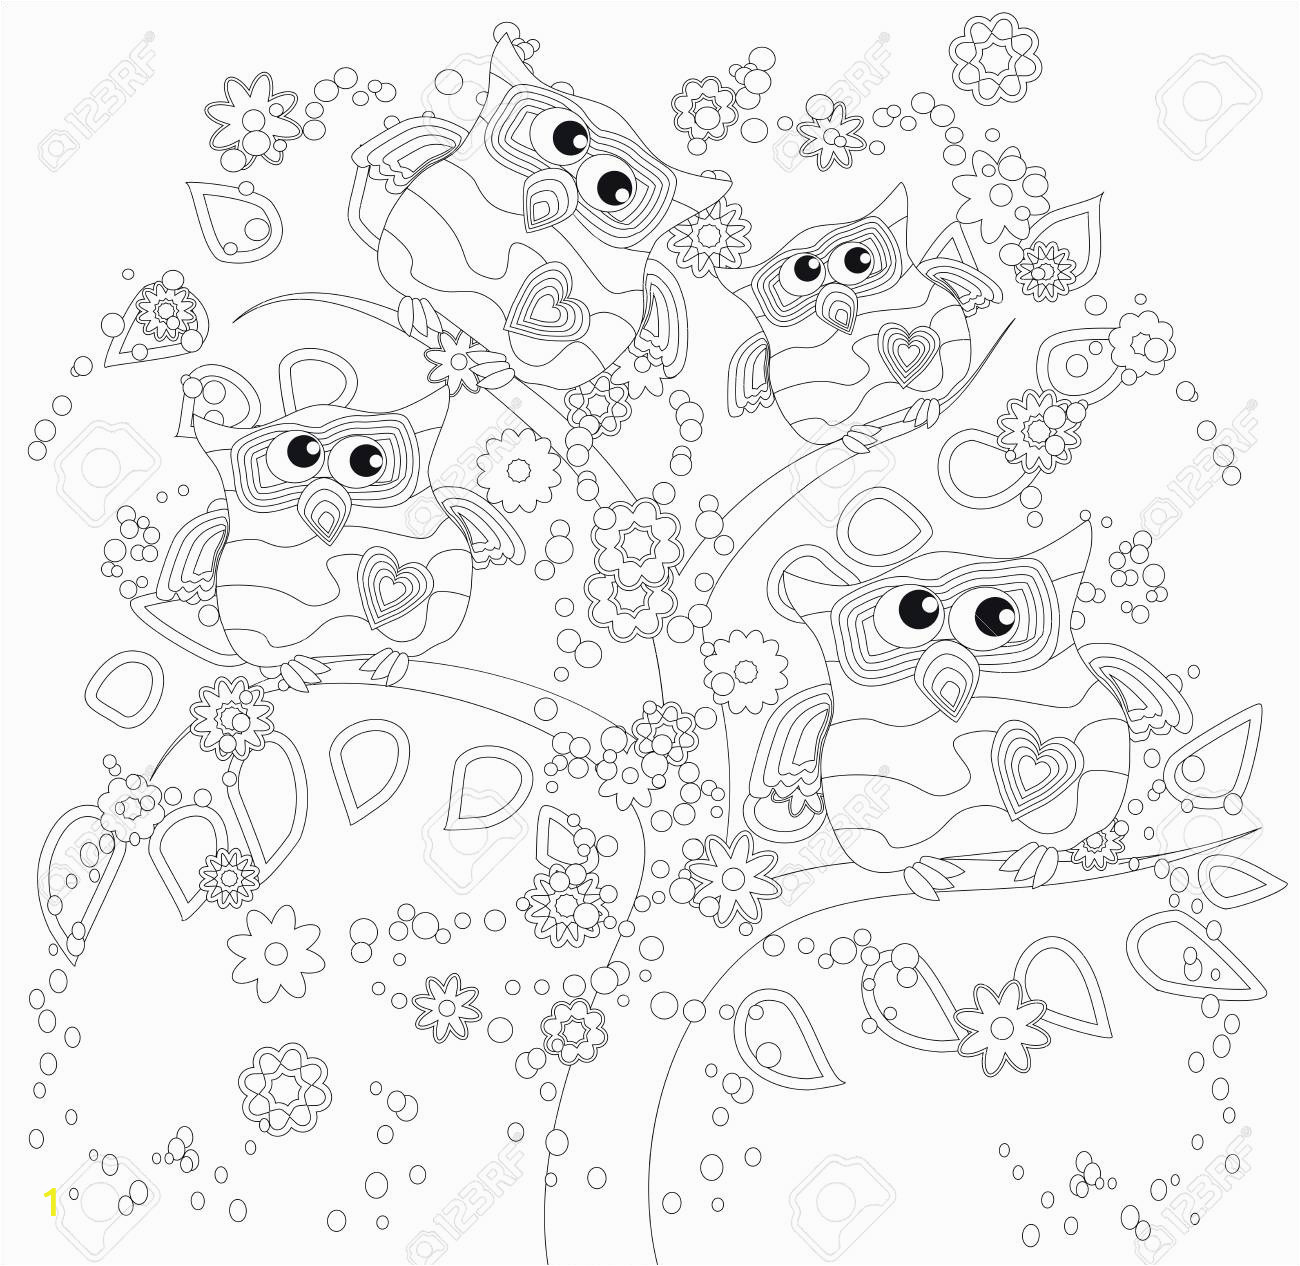 coloring book for adult and older children coloring page with cute owl and floral frame